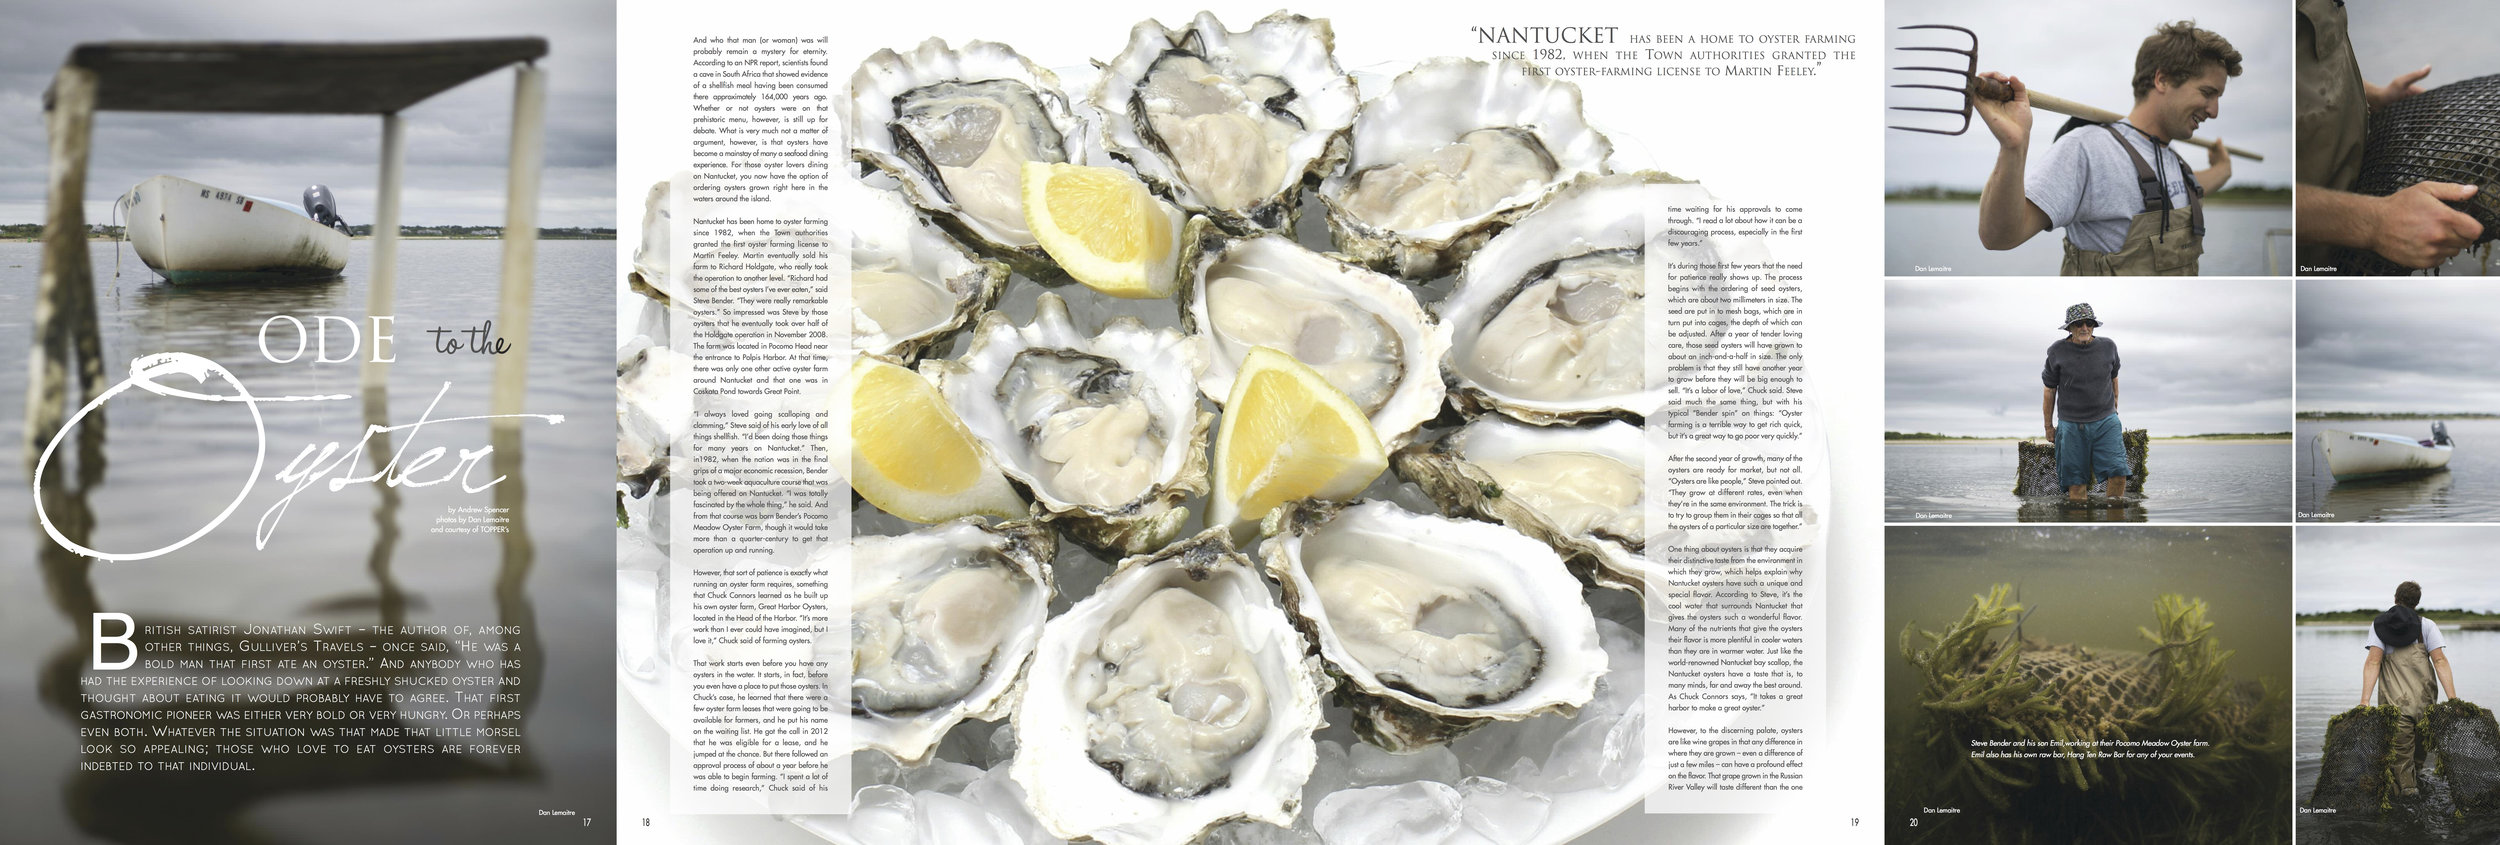 """""""Ode to the Oyster"""", REVIEW Nantucket, Spring 2017"""